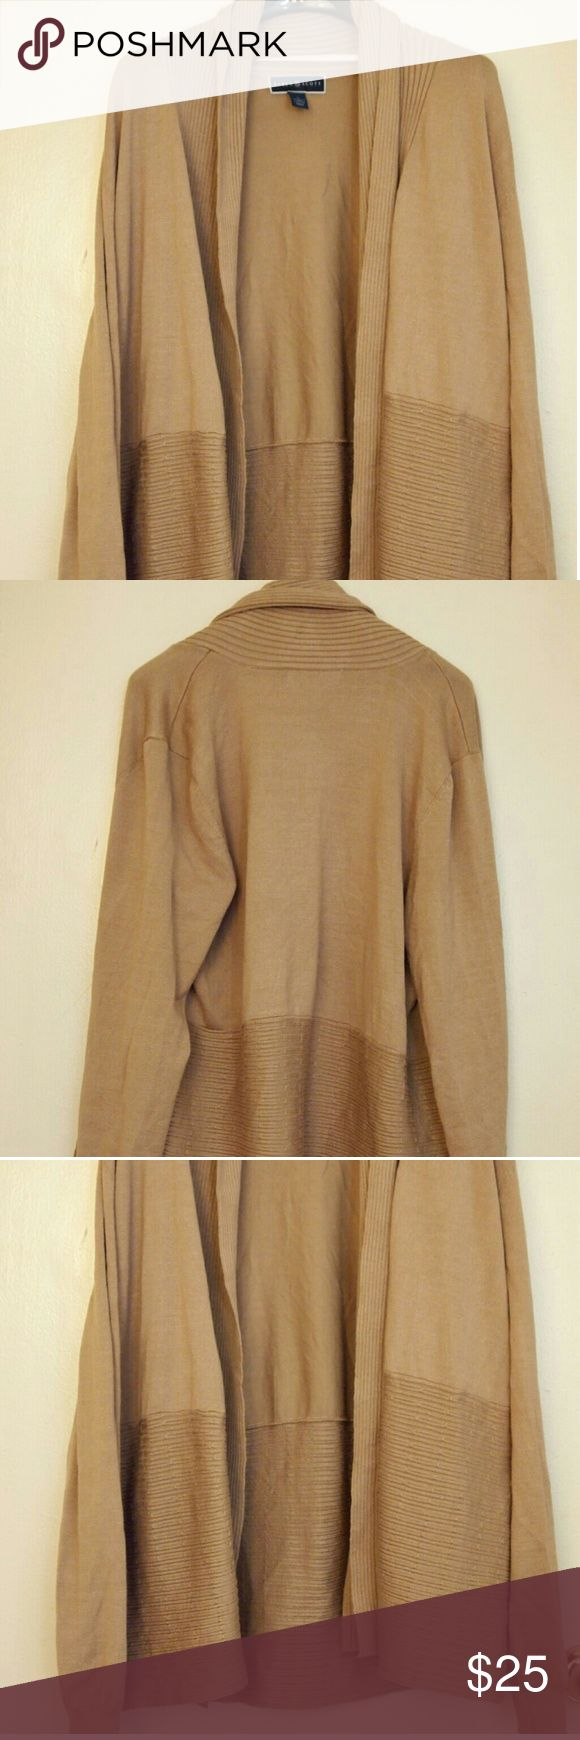 Women's cover jacket coat size Large L long sleeve New, tan color, soft fabric. Handling time is 4 to 6 days. Karen Scott Jackets & Coats